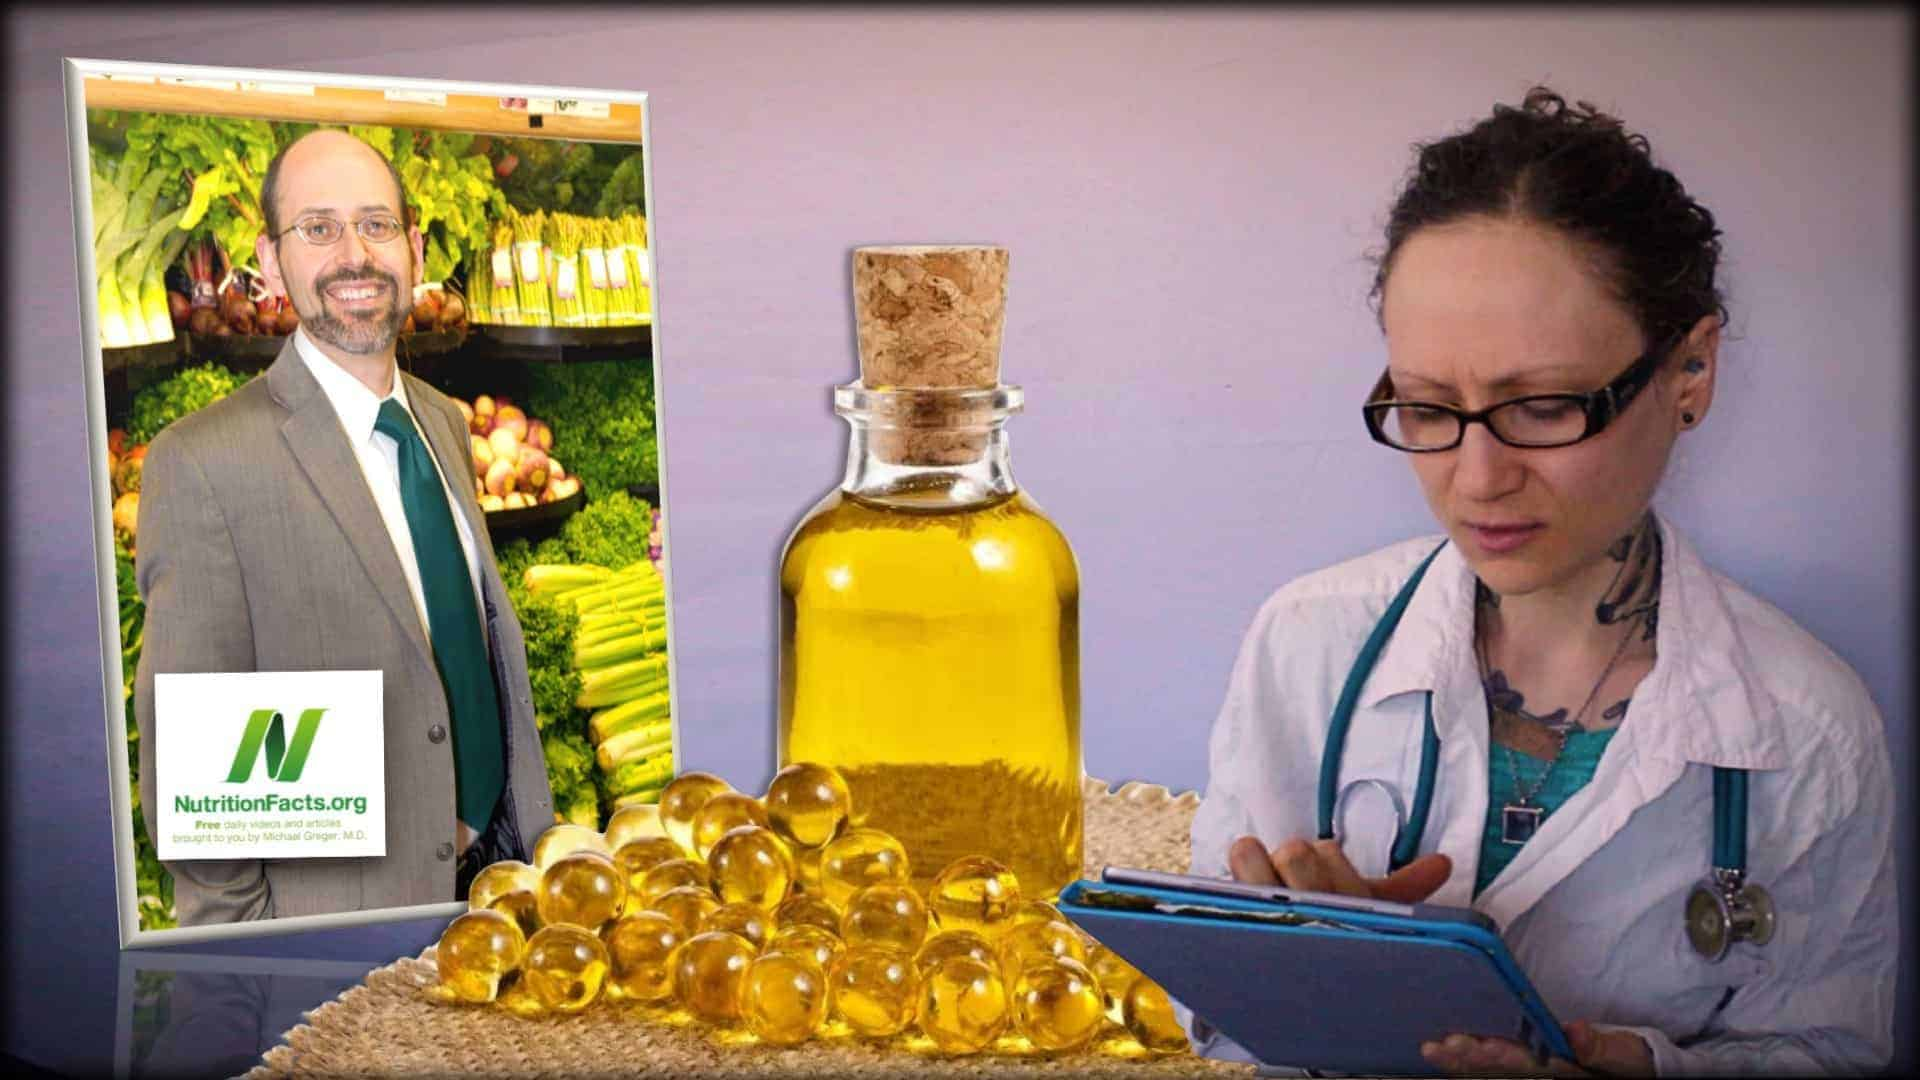 Dr. Greger of NutritionFacts.org is seen as an inset photograph on the left. In the center is a bottle of cod liver pills and some cod liver oil tablets. On the right is an image of Emily Moran Barwick of Bite Size Vegan wearing a doctors coat, complete with stethoscope entering data into a tablet computer.